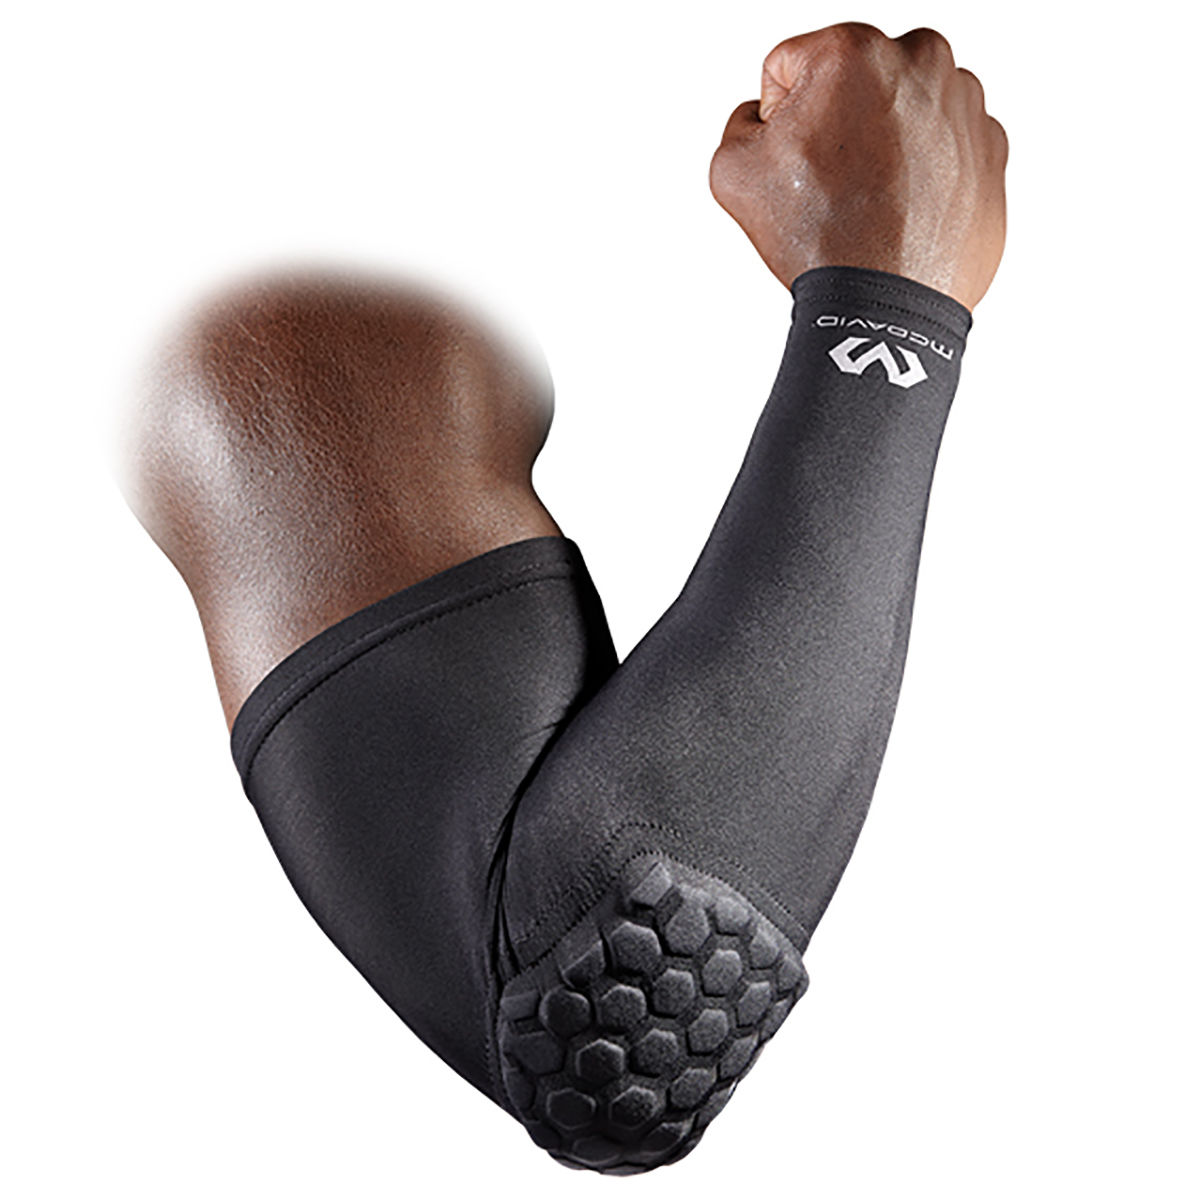 McDavid Hexpad Youth Shooter Arm Sleeve